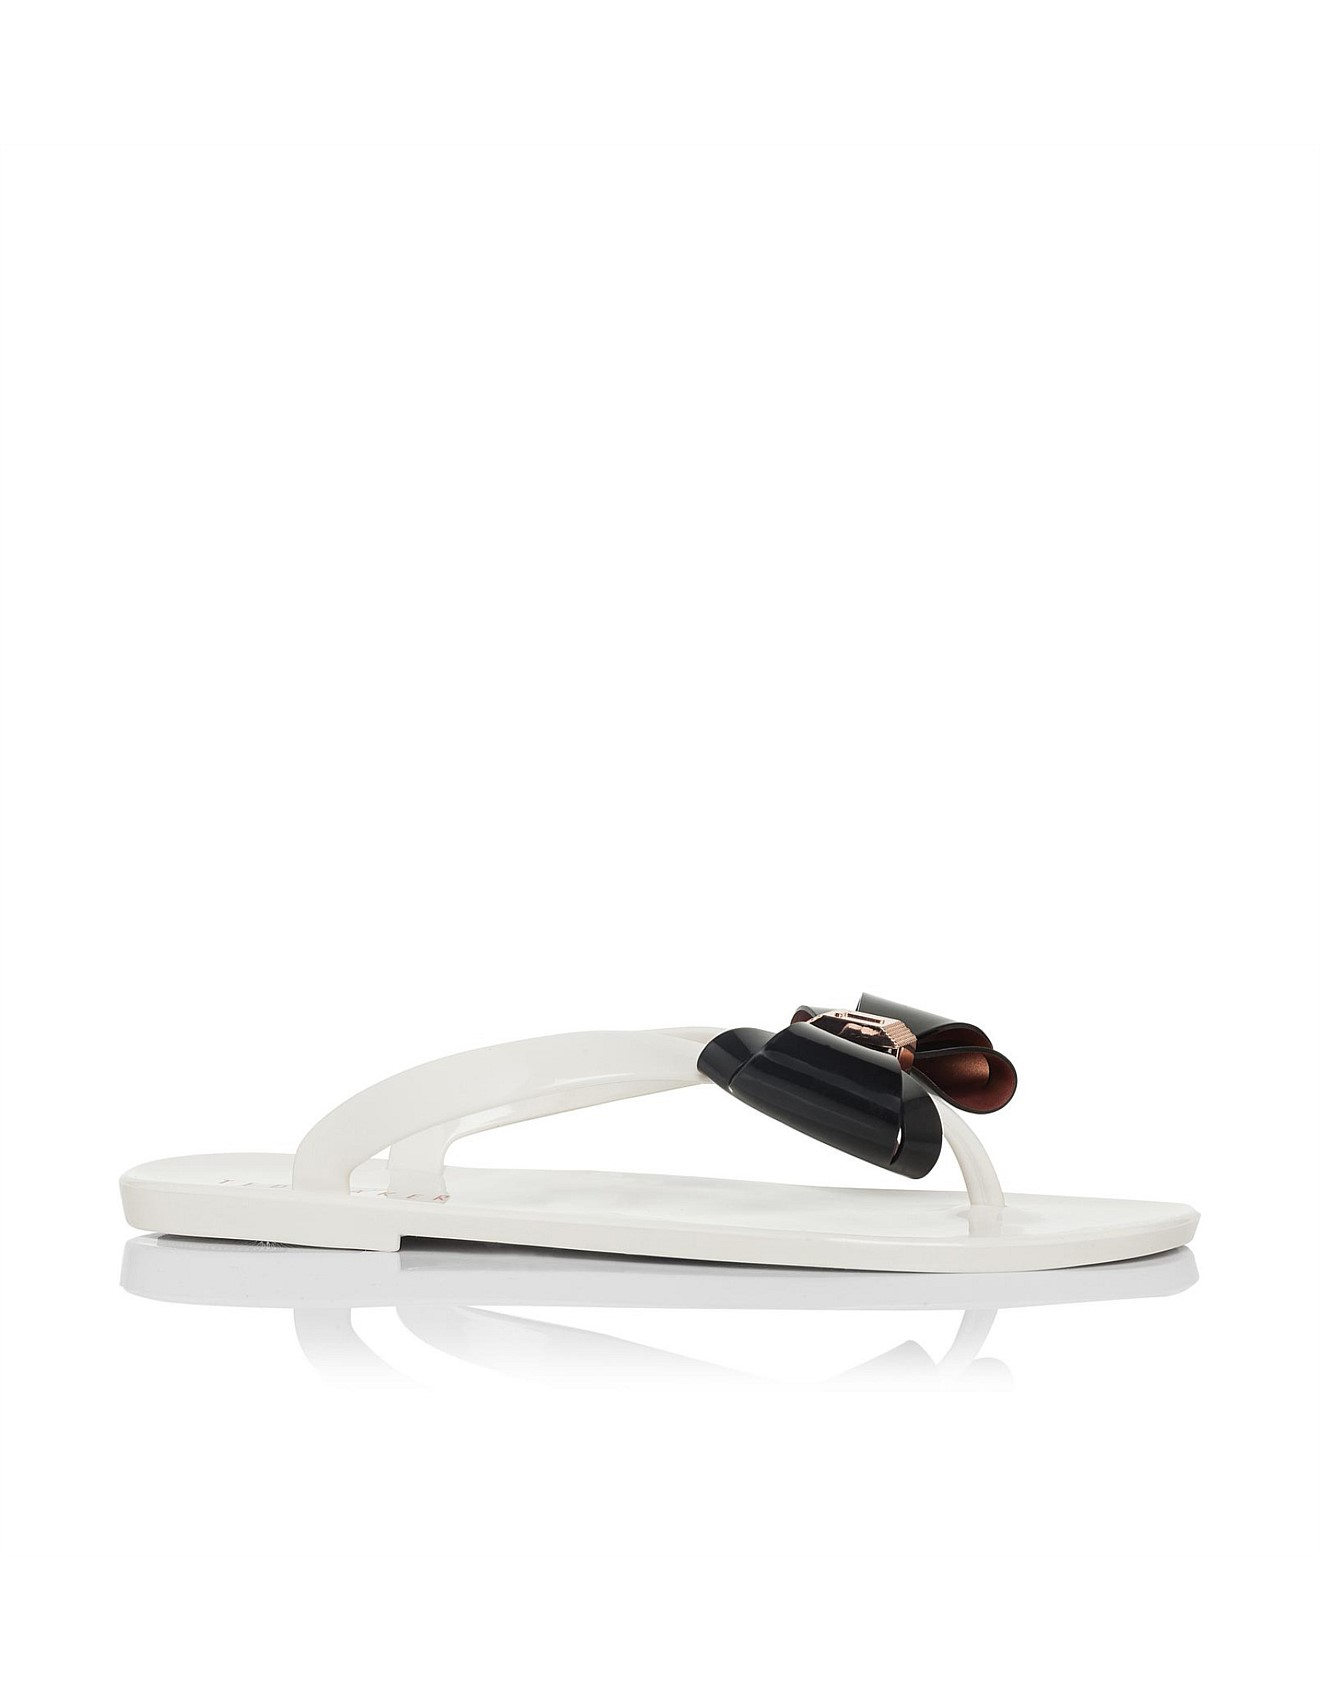 707e4b513 Bow Detail Jelly Flip Flop